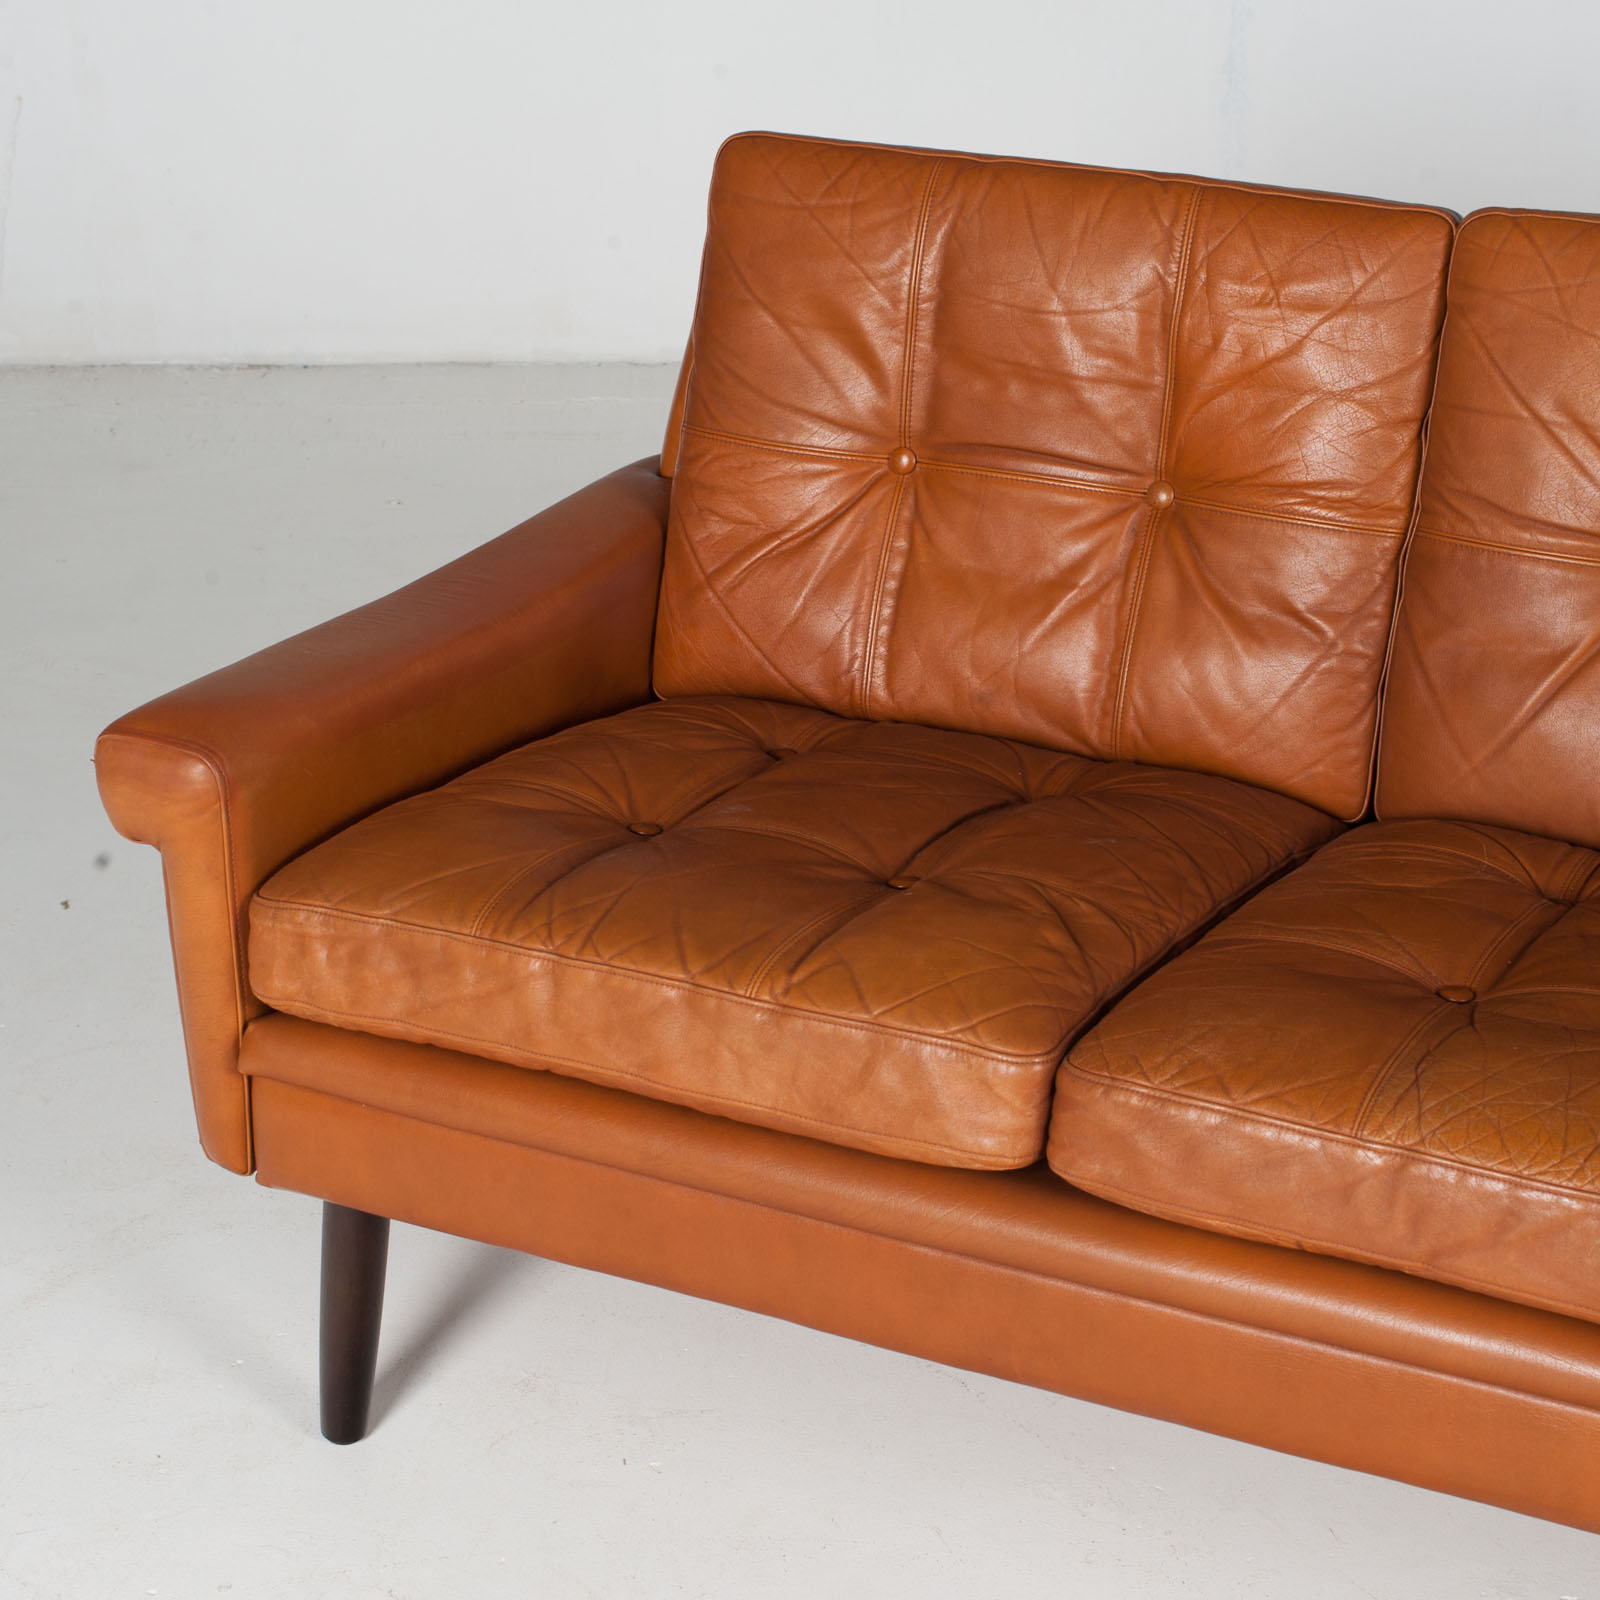 3 Seat Sofa In Tan Leather With Button Detailing For Skipper, 1960s, Denmark5